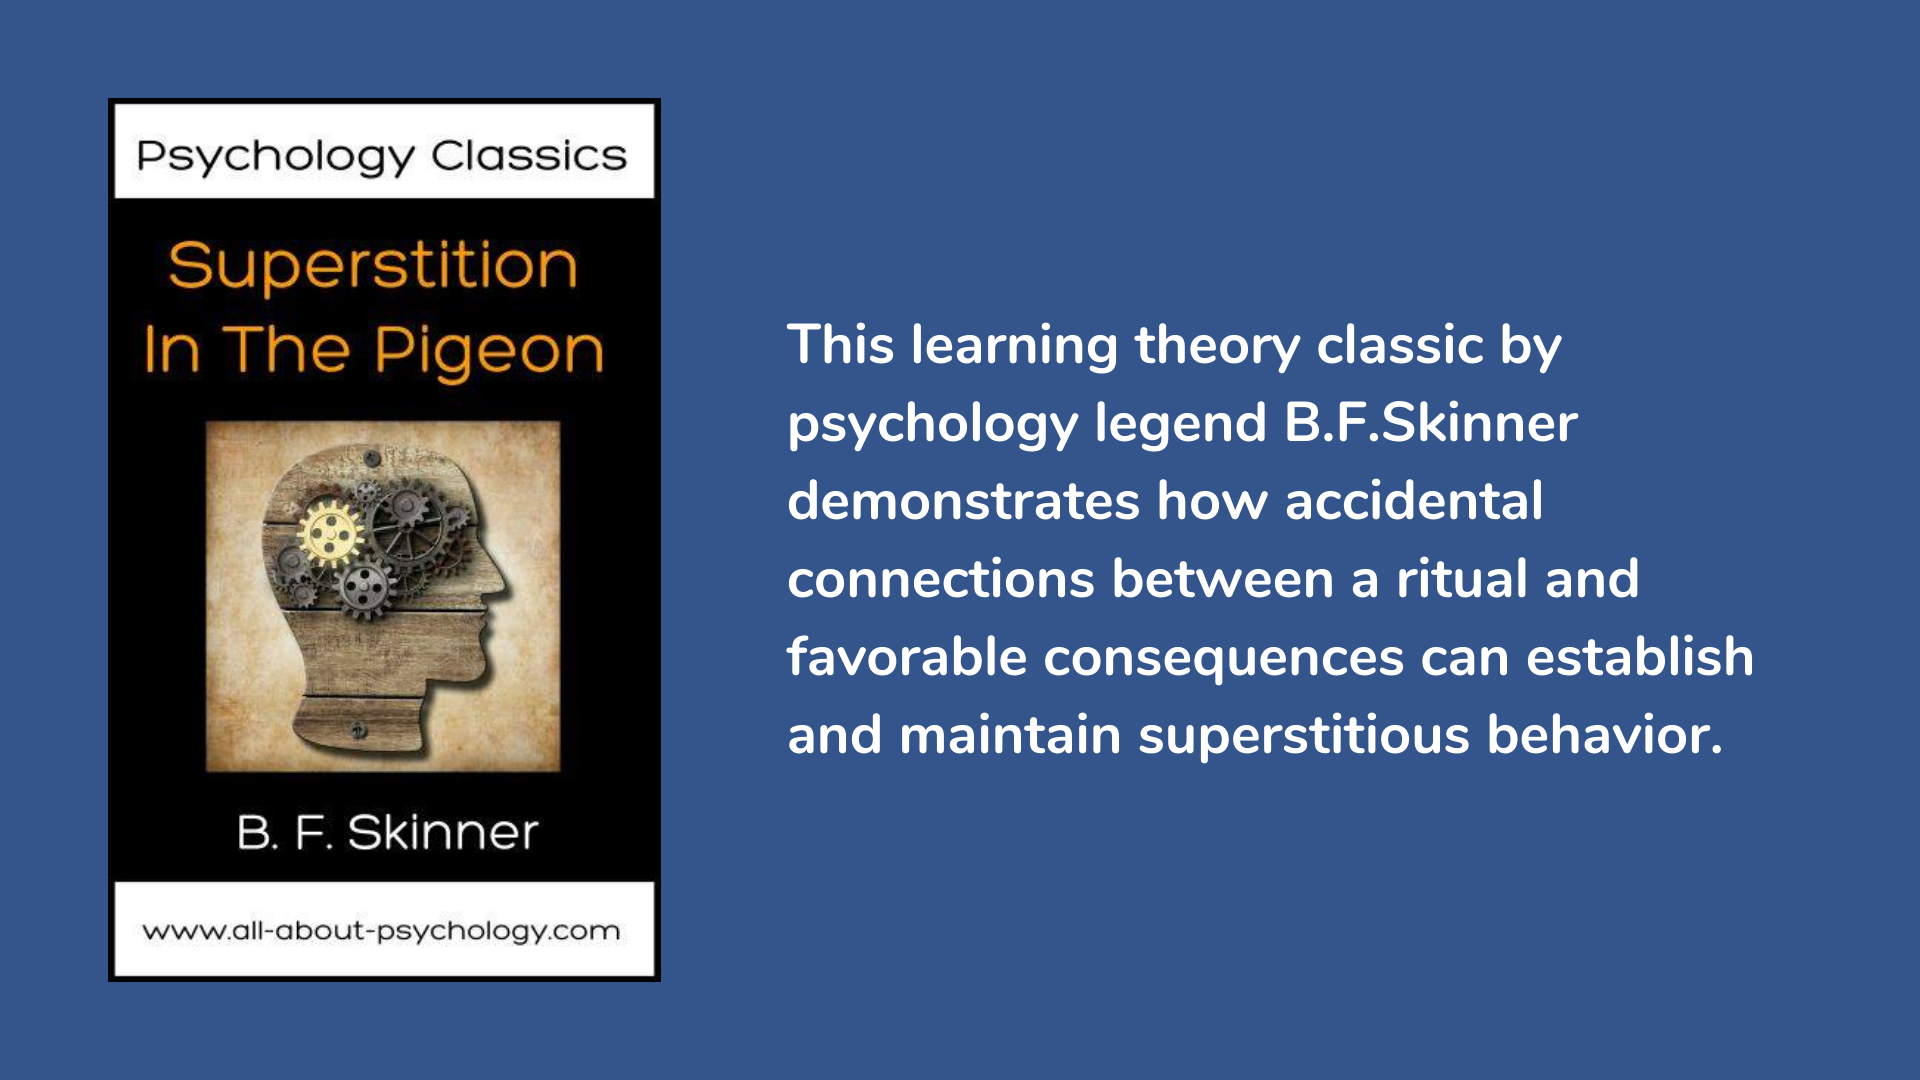 Superstition in The Pigeon by psychology legend B. F. Skinner